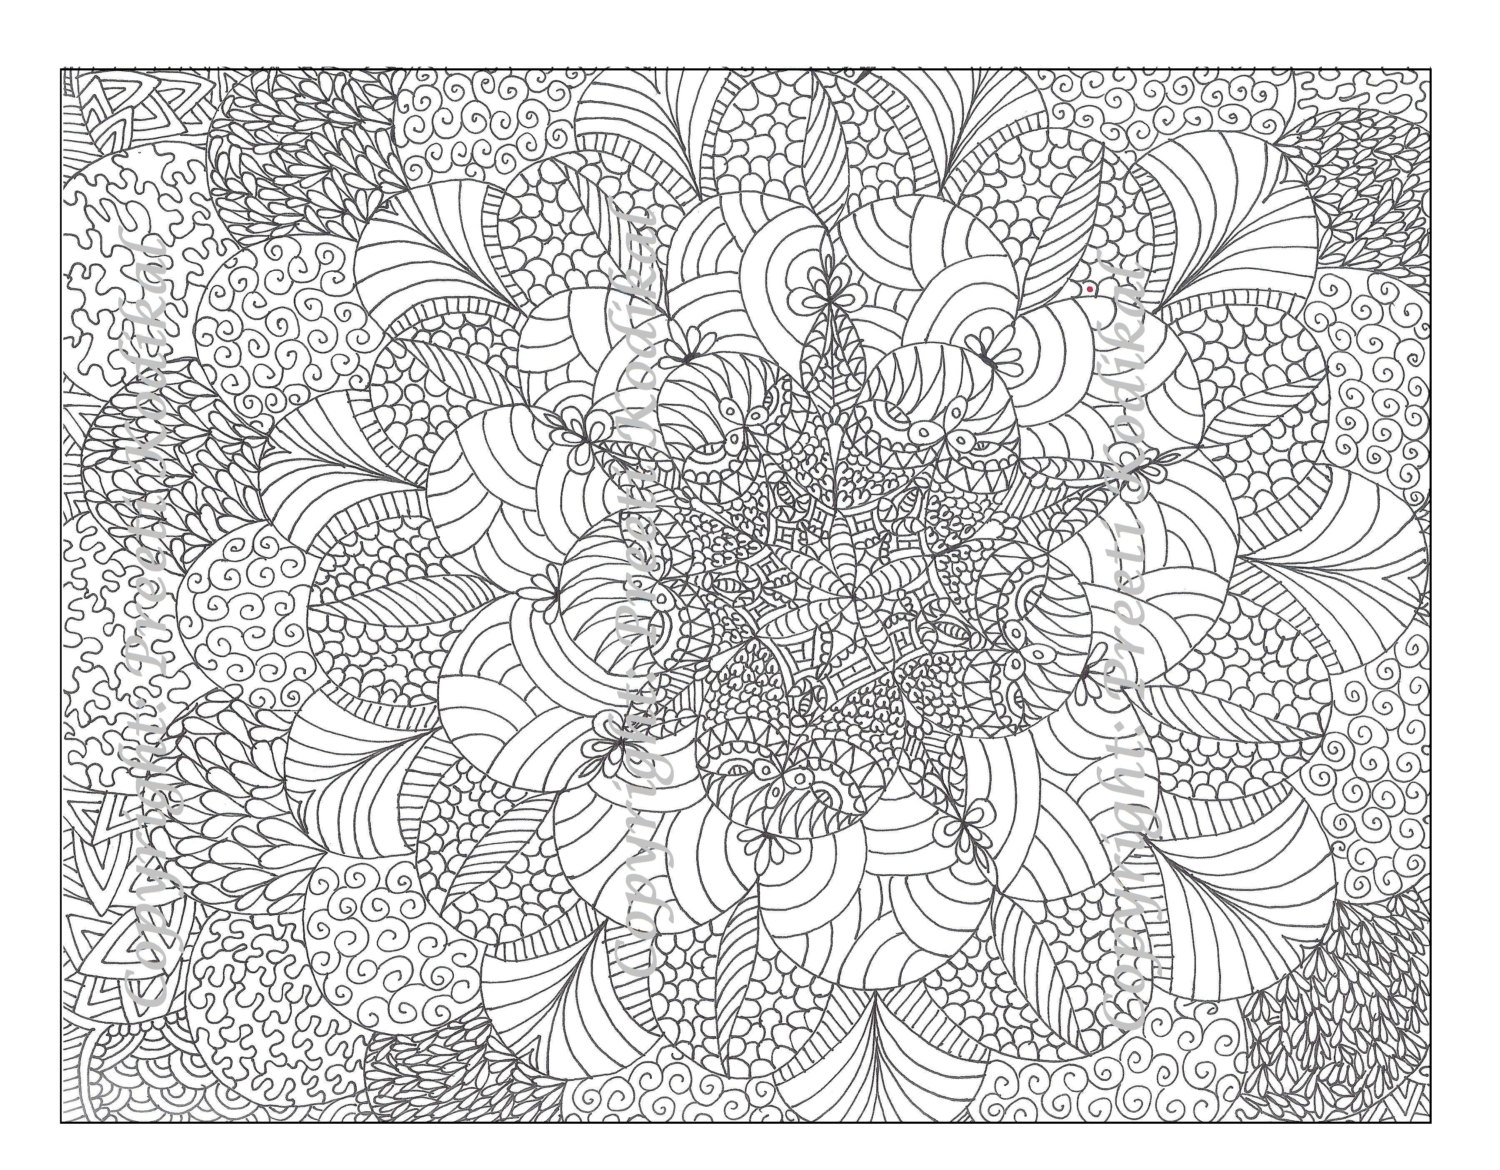 detailed coloring pages printable - Coloring Pages Abstract Printable